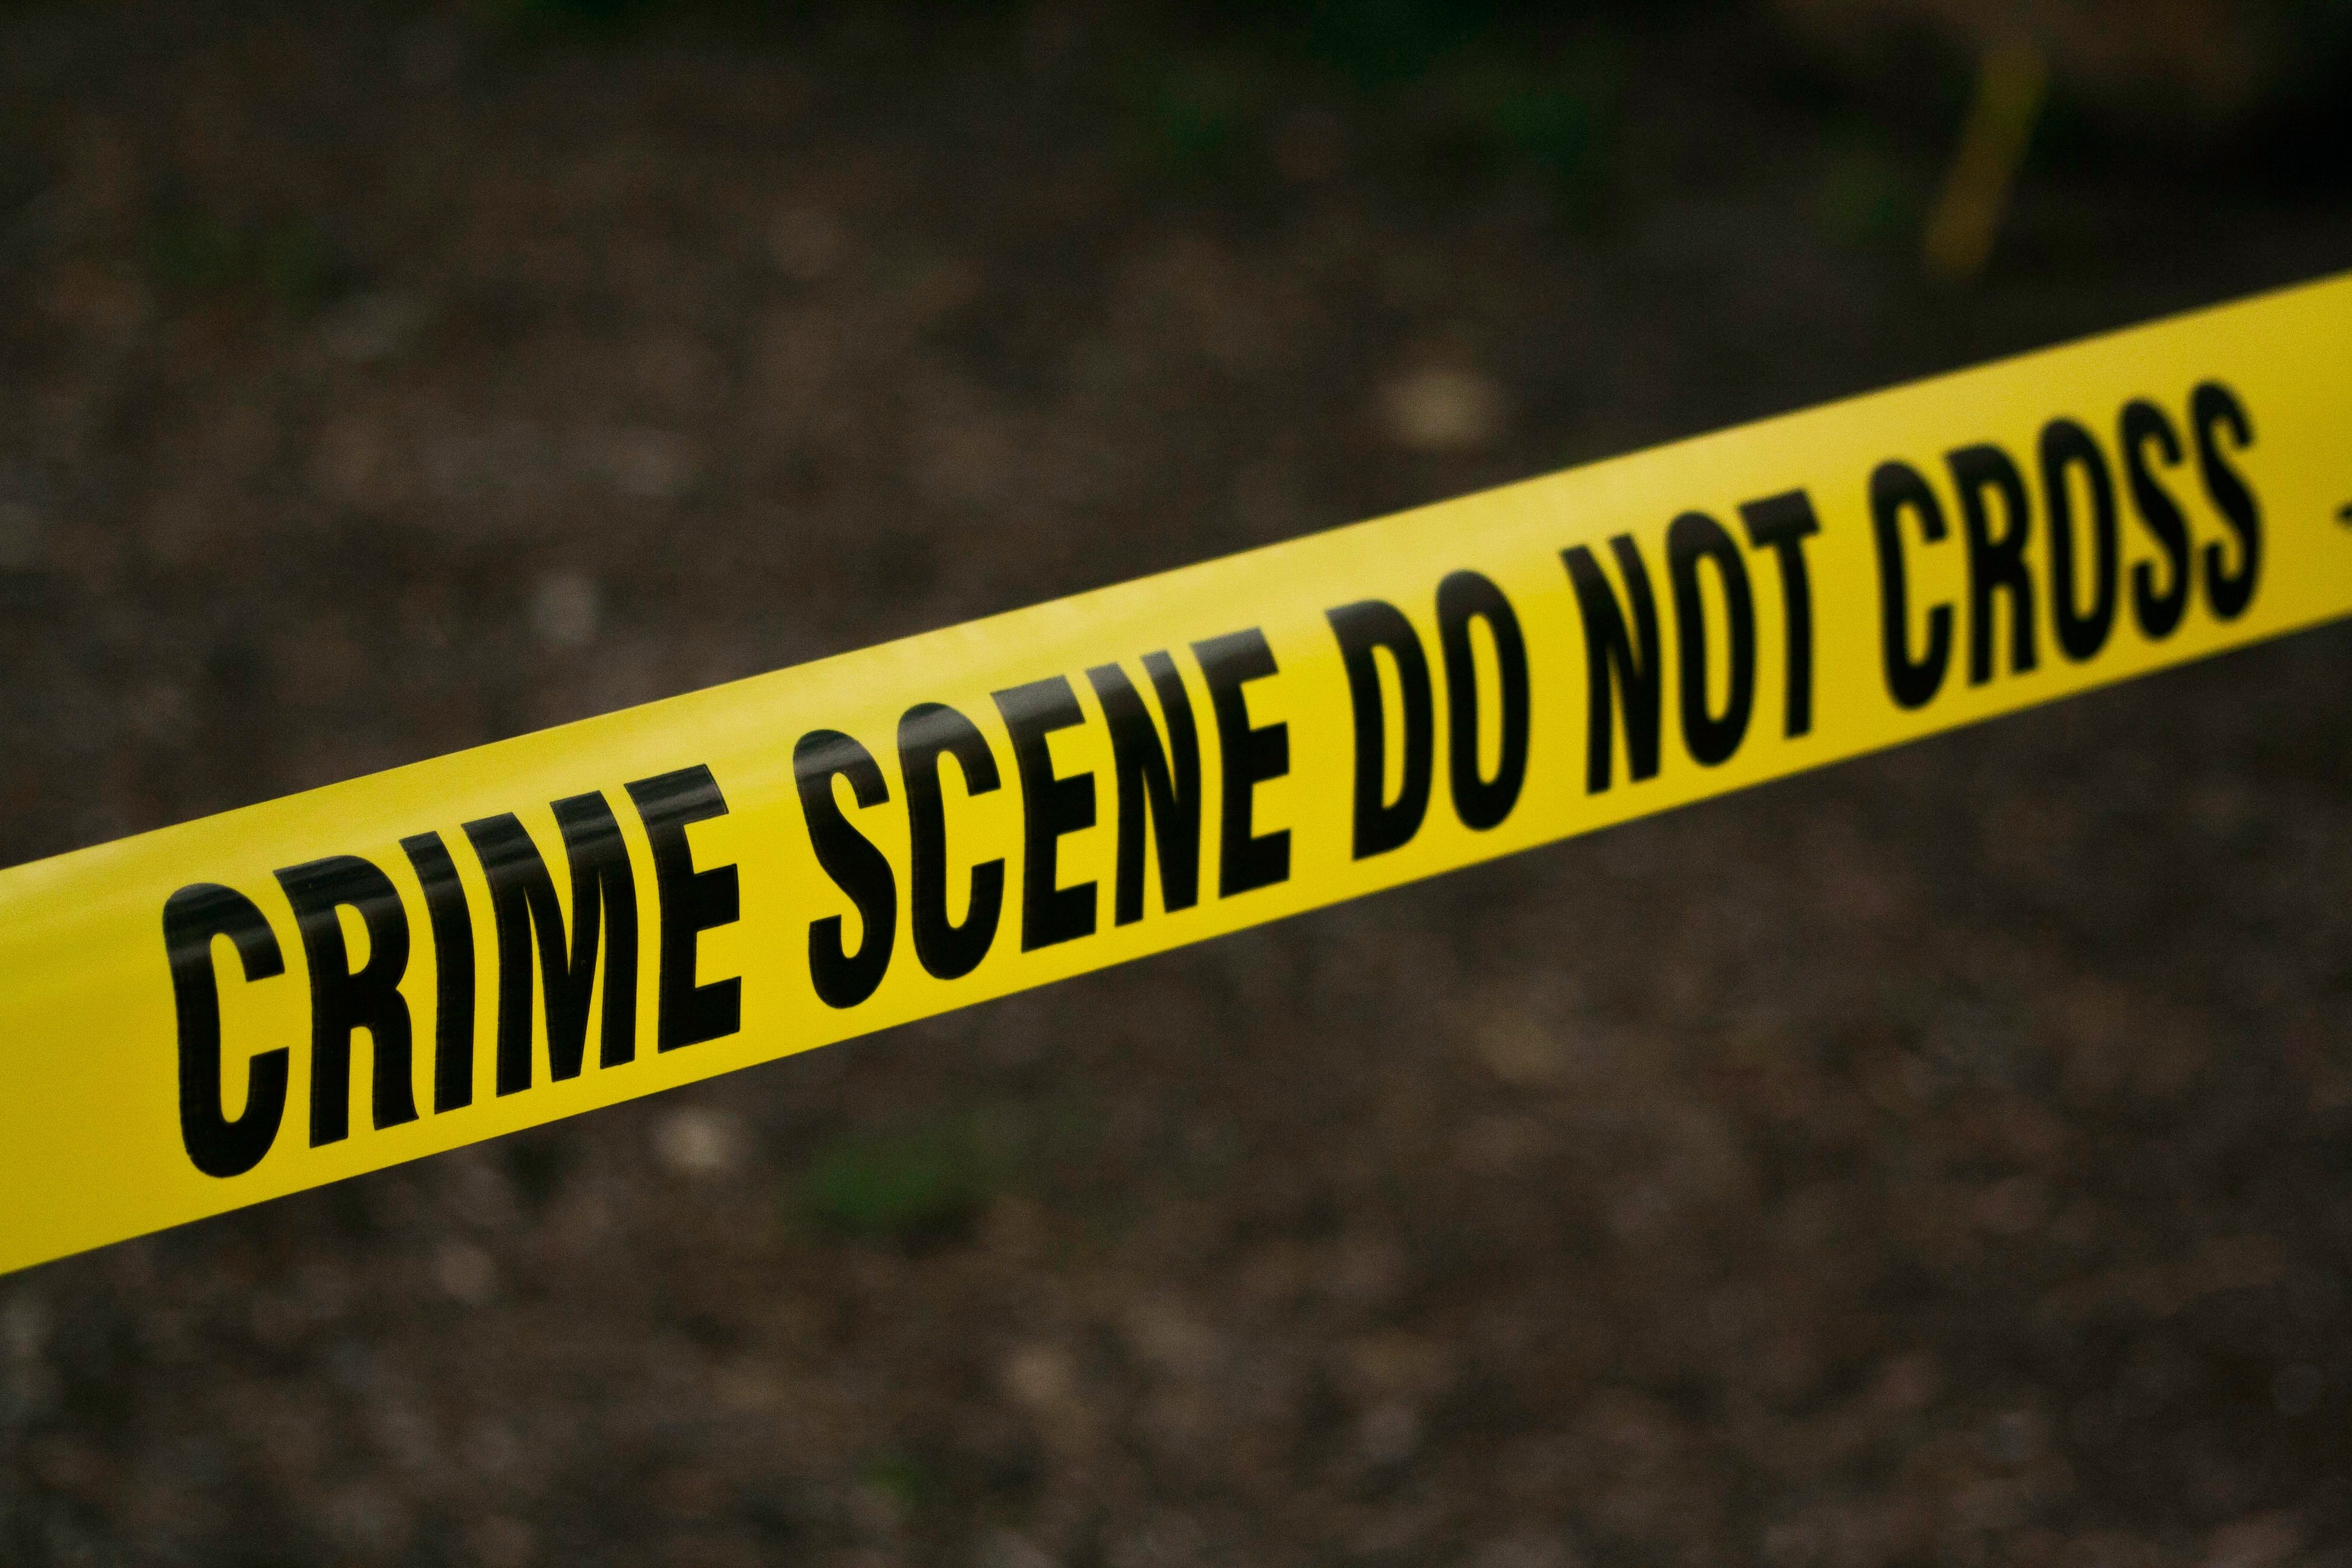 Pictured - A photo of a crime scene do not cross signage | Source: Pexels